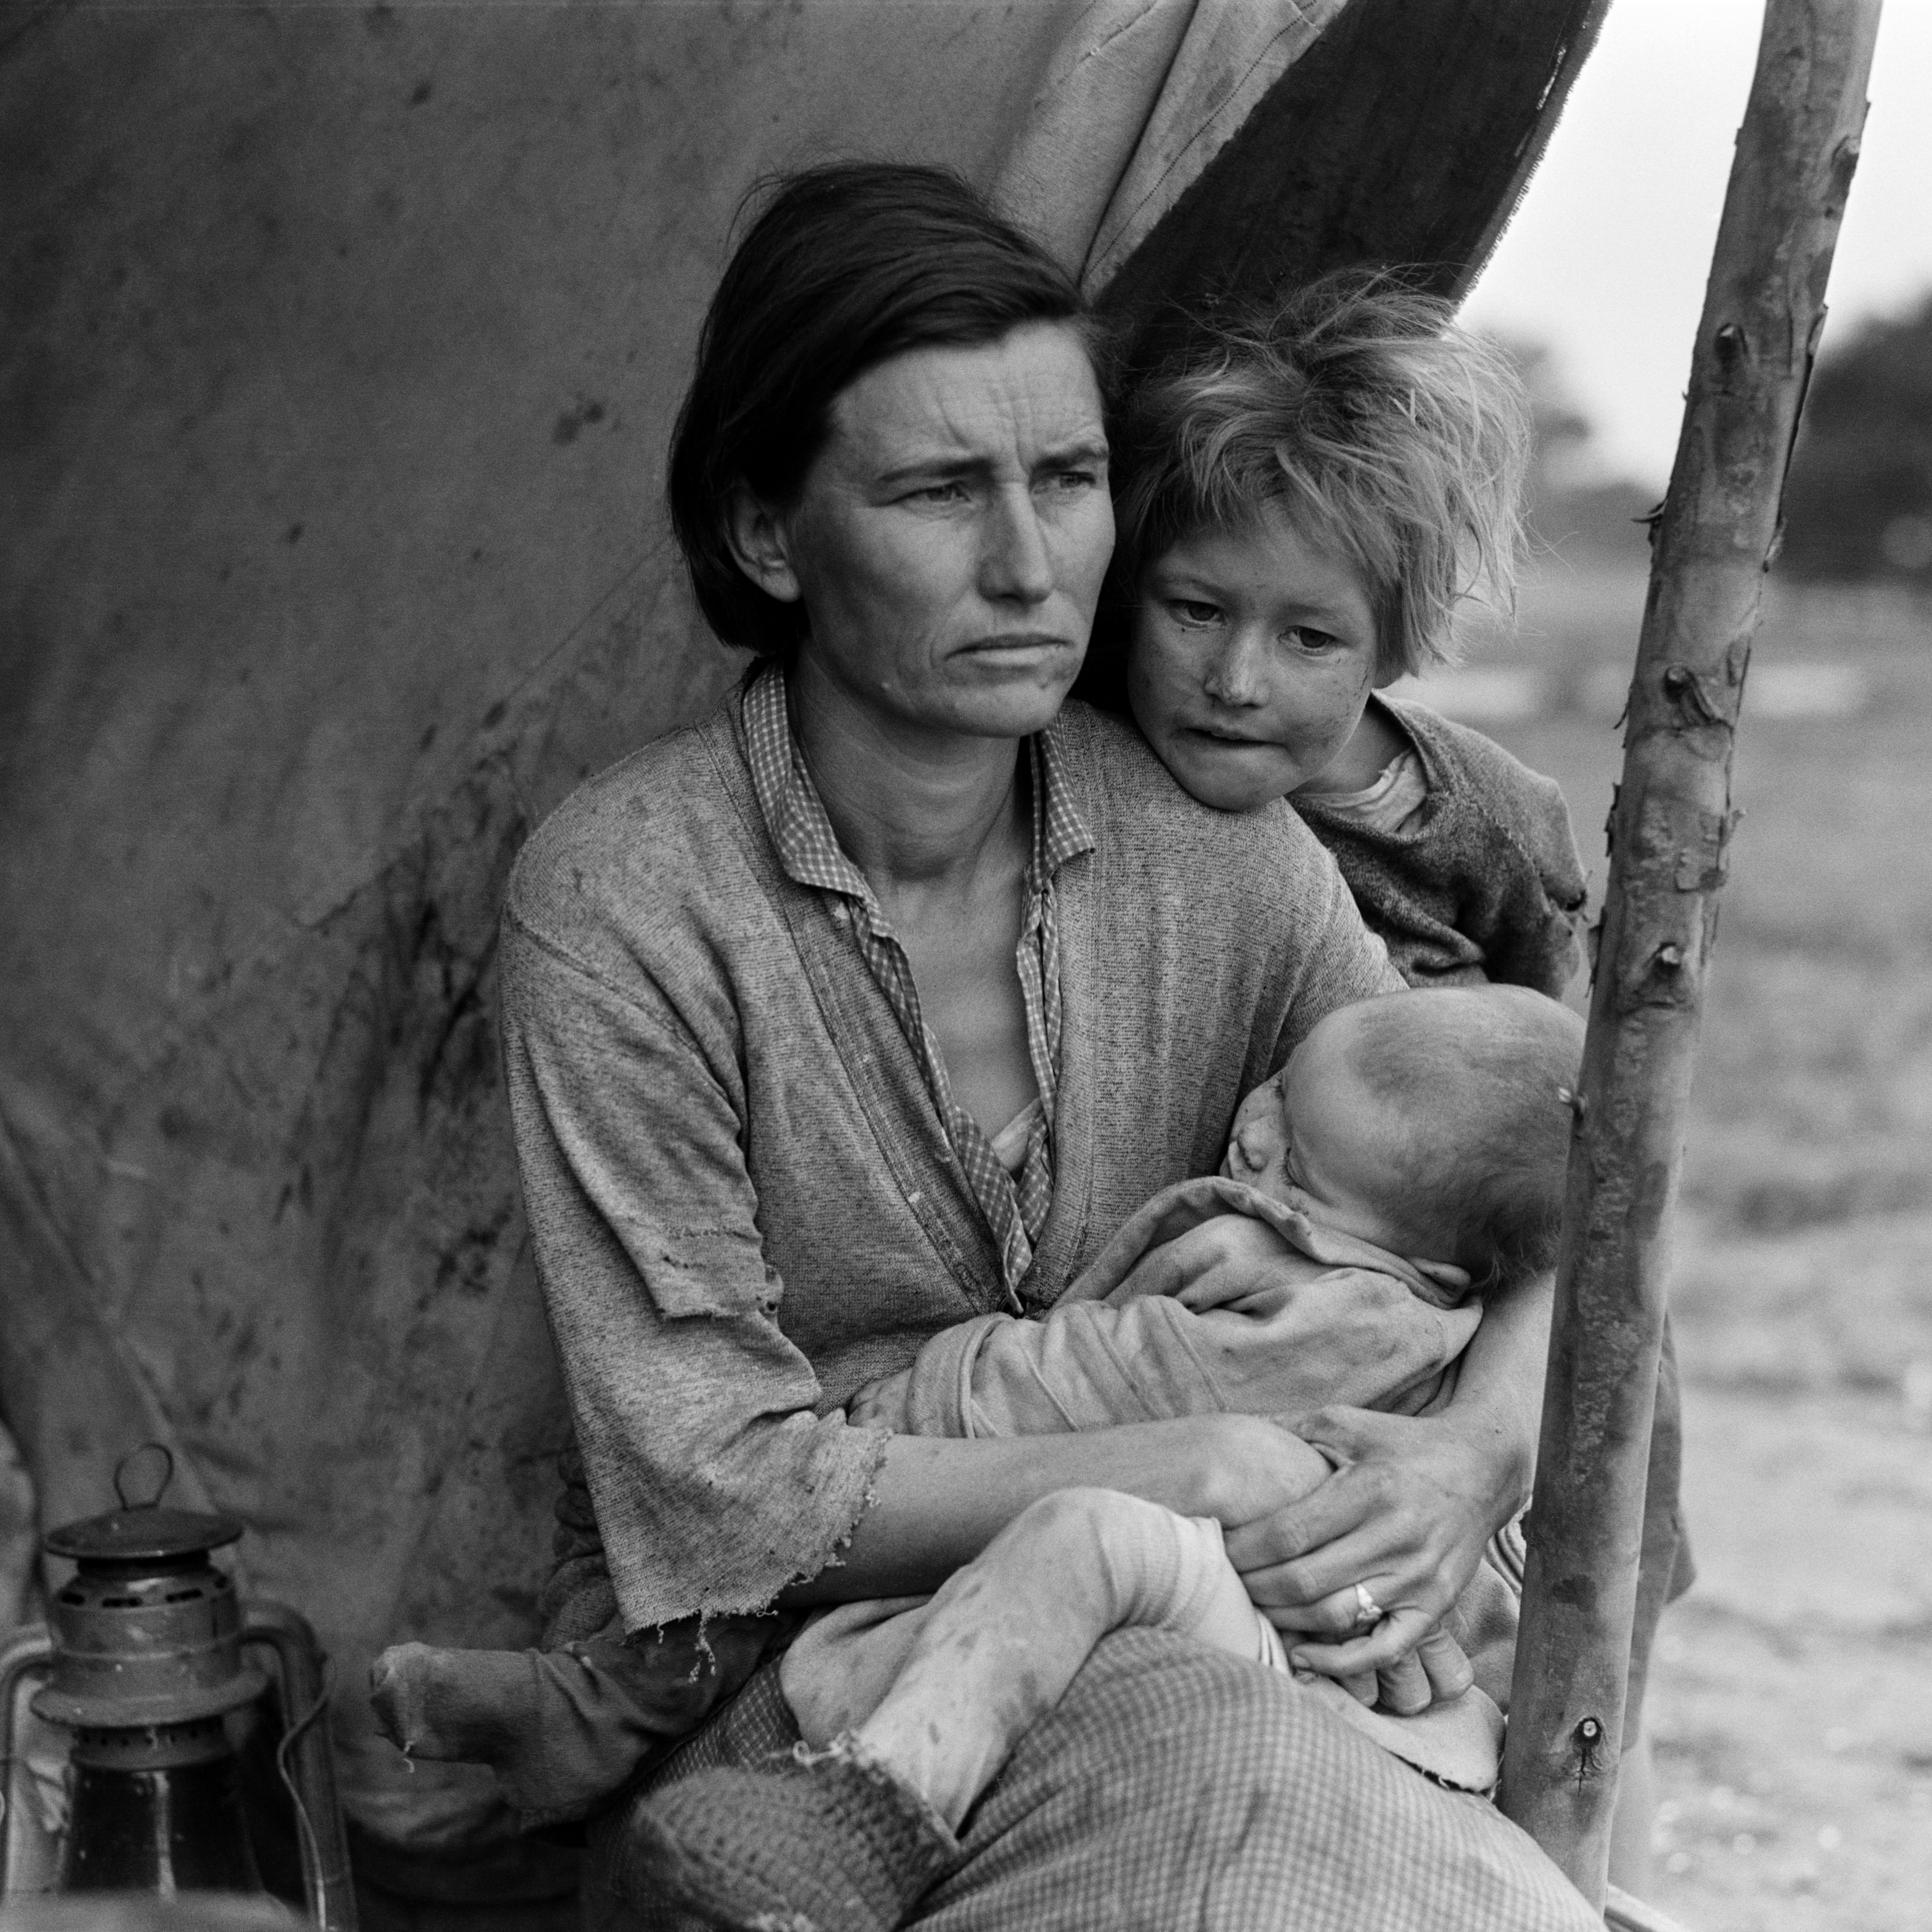 dorothea lange a photographer of a This summer, barbican art gallery stages the first uk survey of the american documentary photographer dorothea lange (1895–1965), one of the most influential photographers of the 20th century.